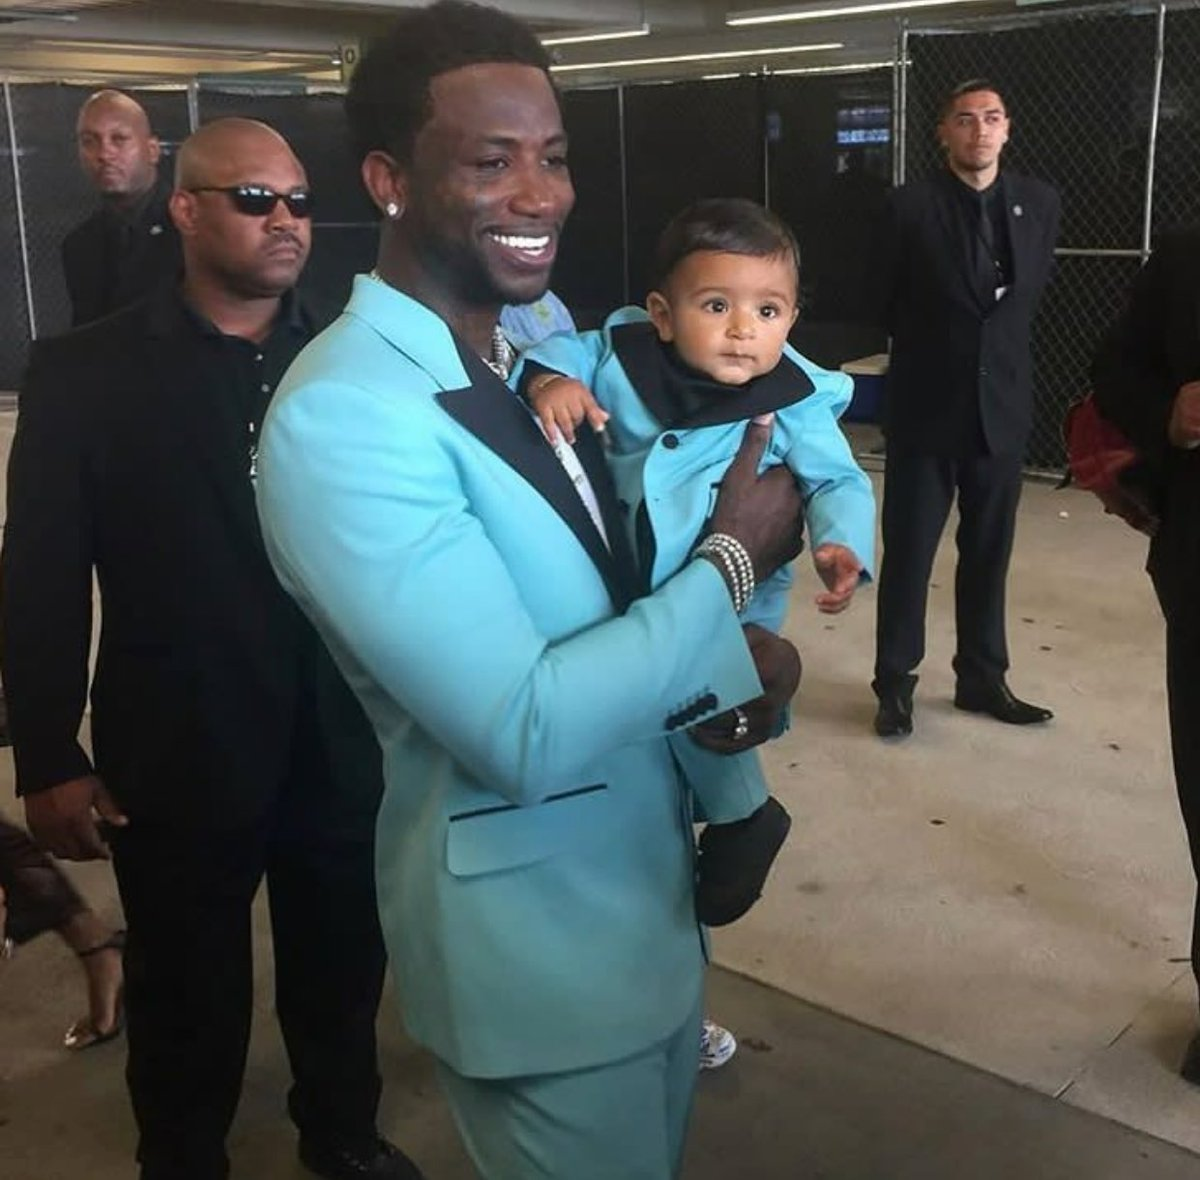 Gucci Mane is living his best life. Gucci & Baby Asahd matching. #BETAwards https://t.co/nQj2c5IfXH